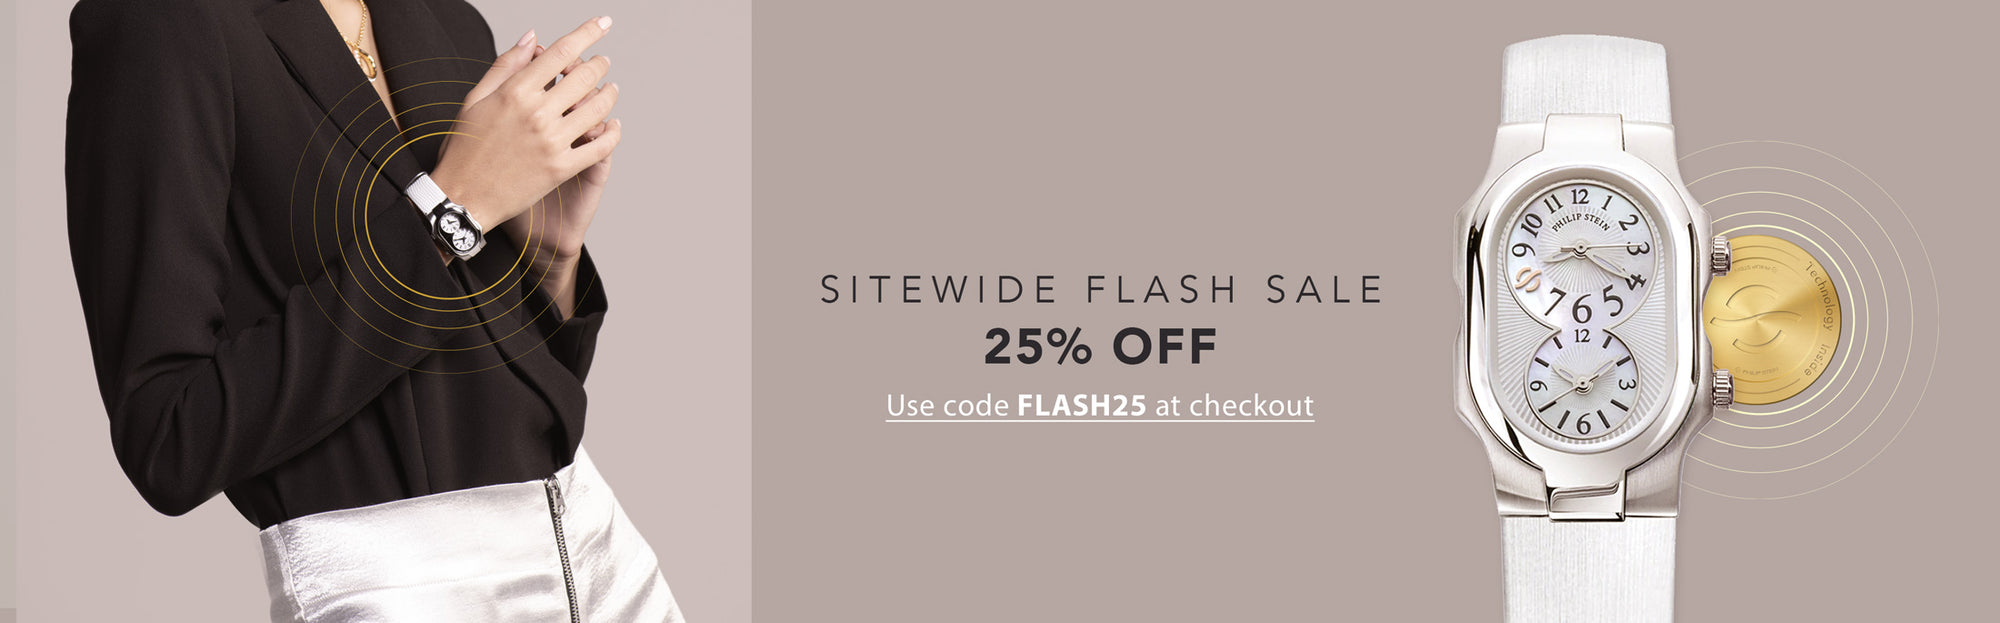 Sitewide Flash Sale 25% OFF - Use Code FLASH25 at checkout